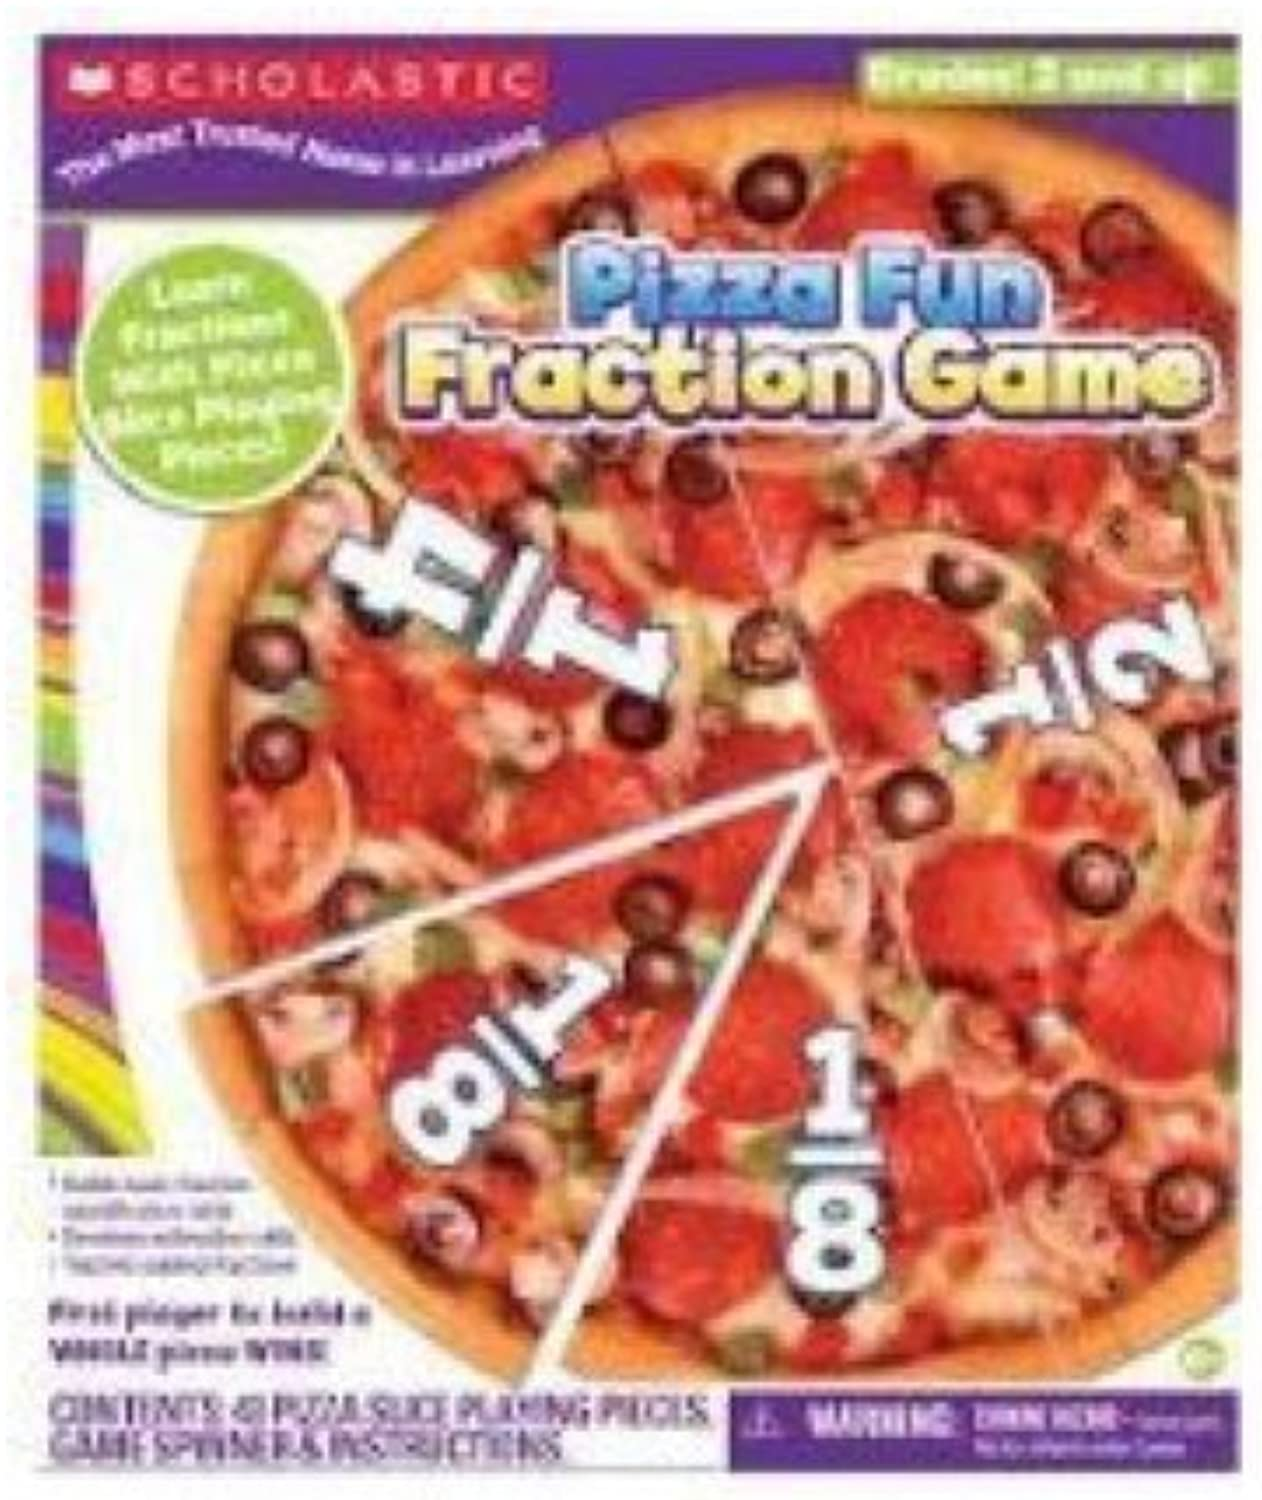 Scholastic Pizza Fun Fraction Game